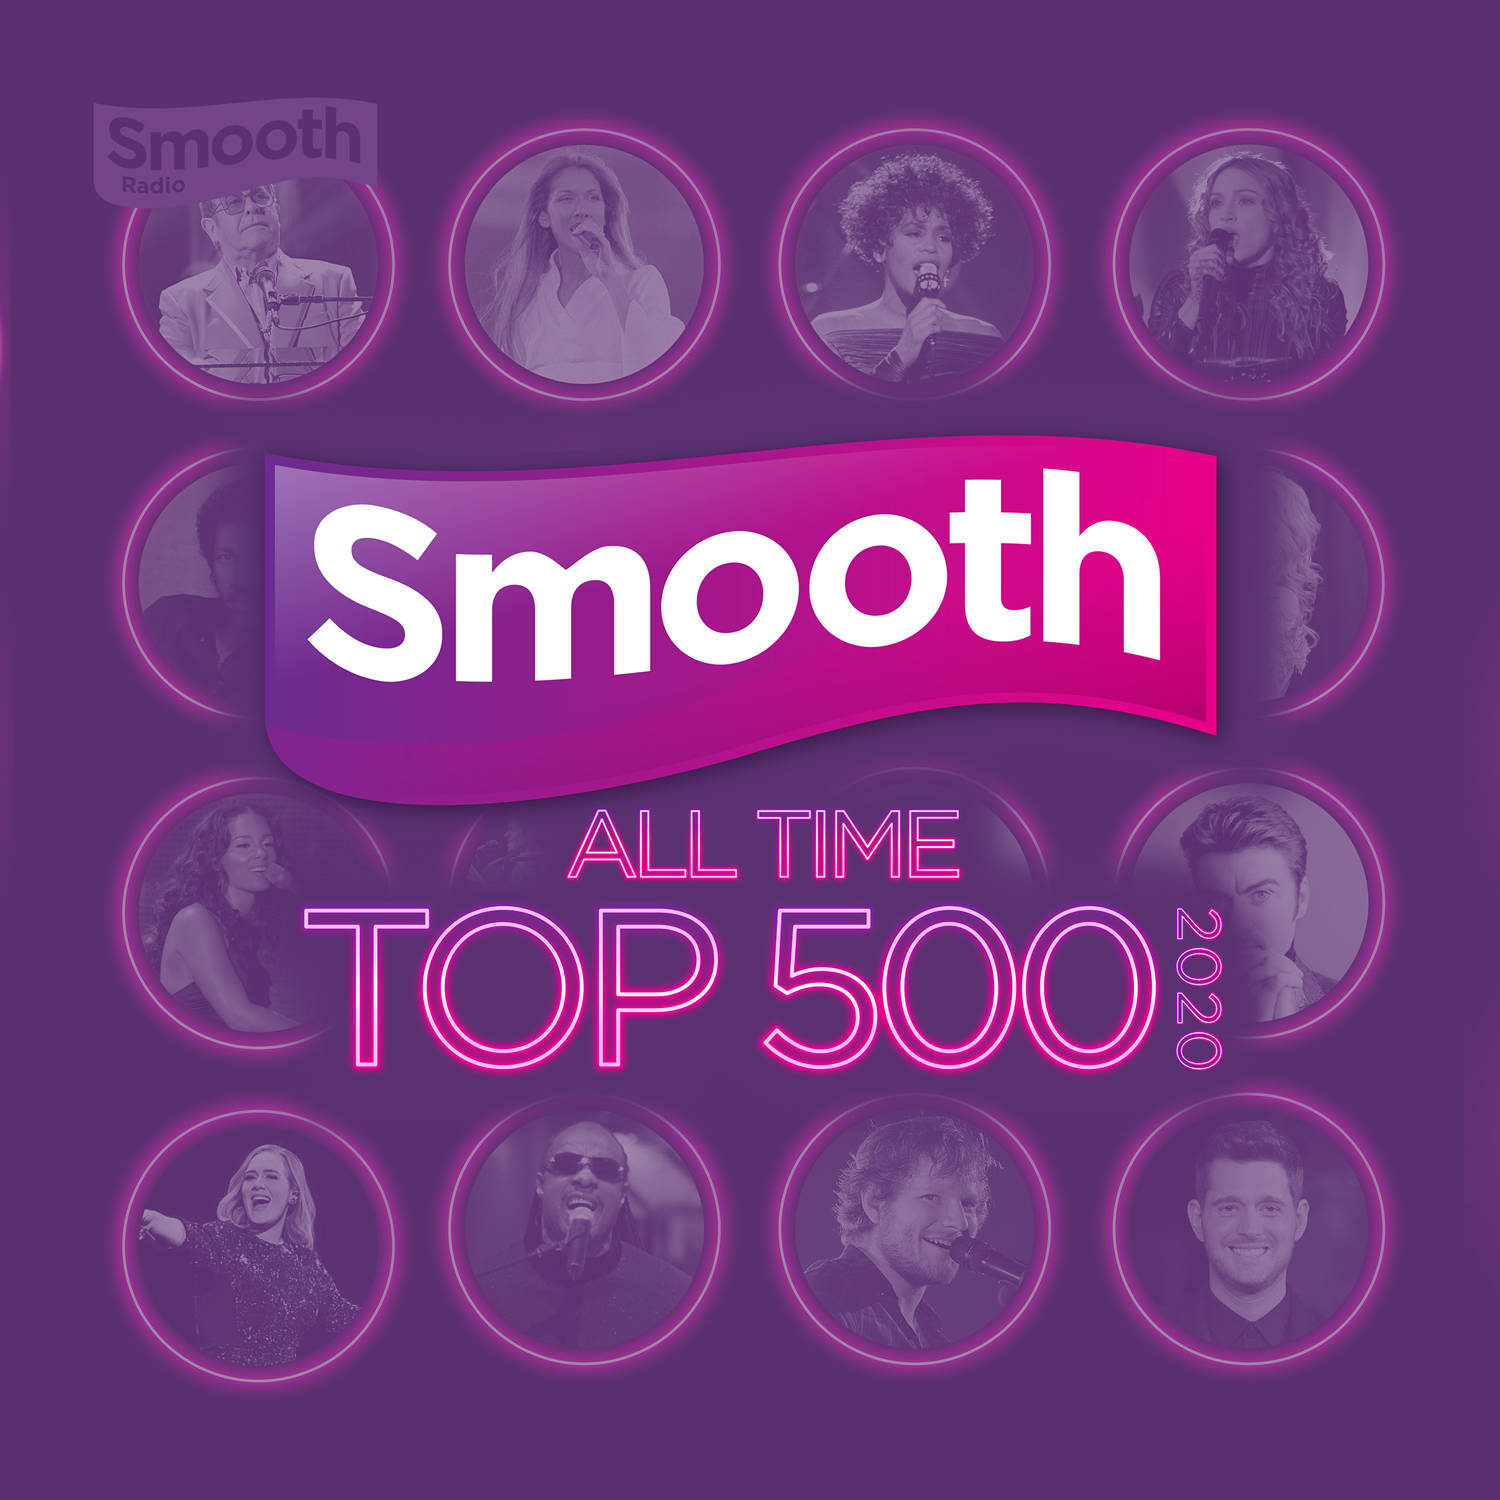 Smooth All Time Top 500 image